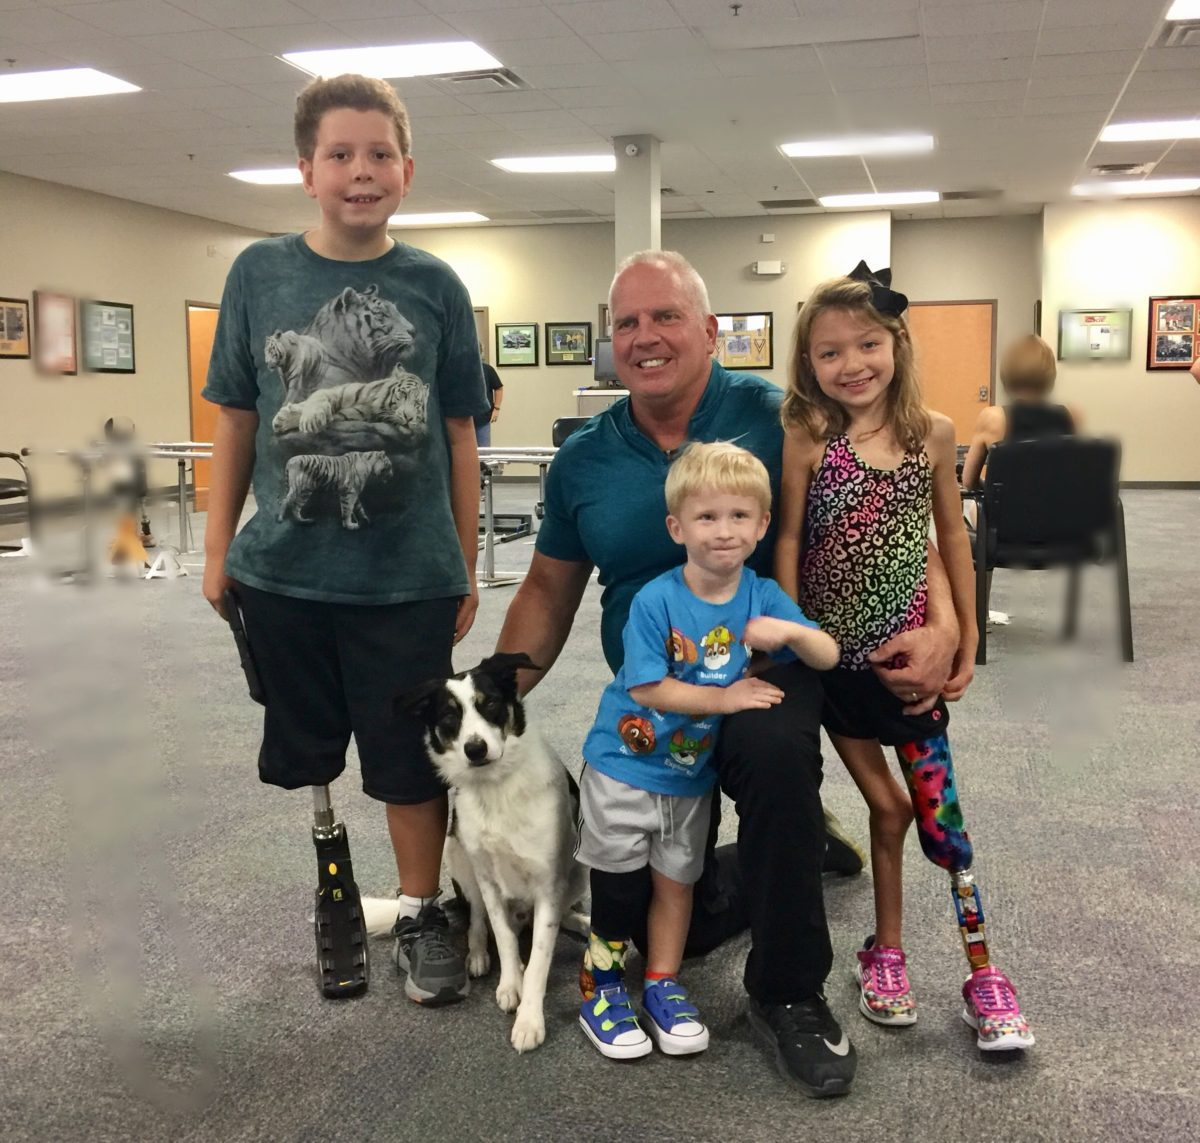 Jaelyn's 1st Prosthetic Leg – She's On Her Way!